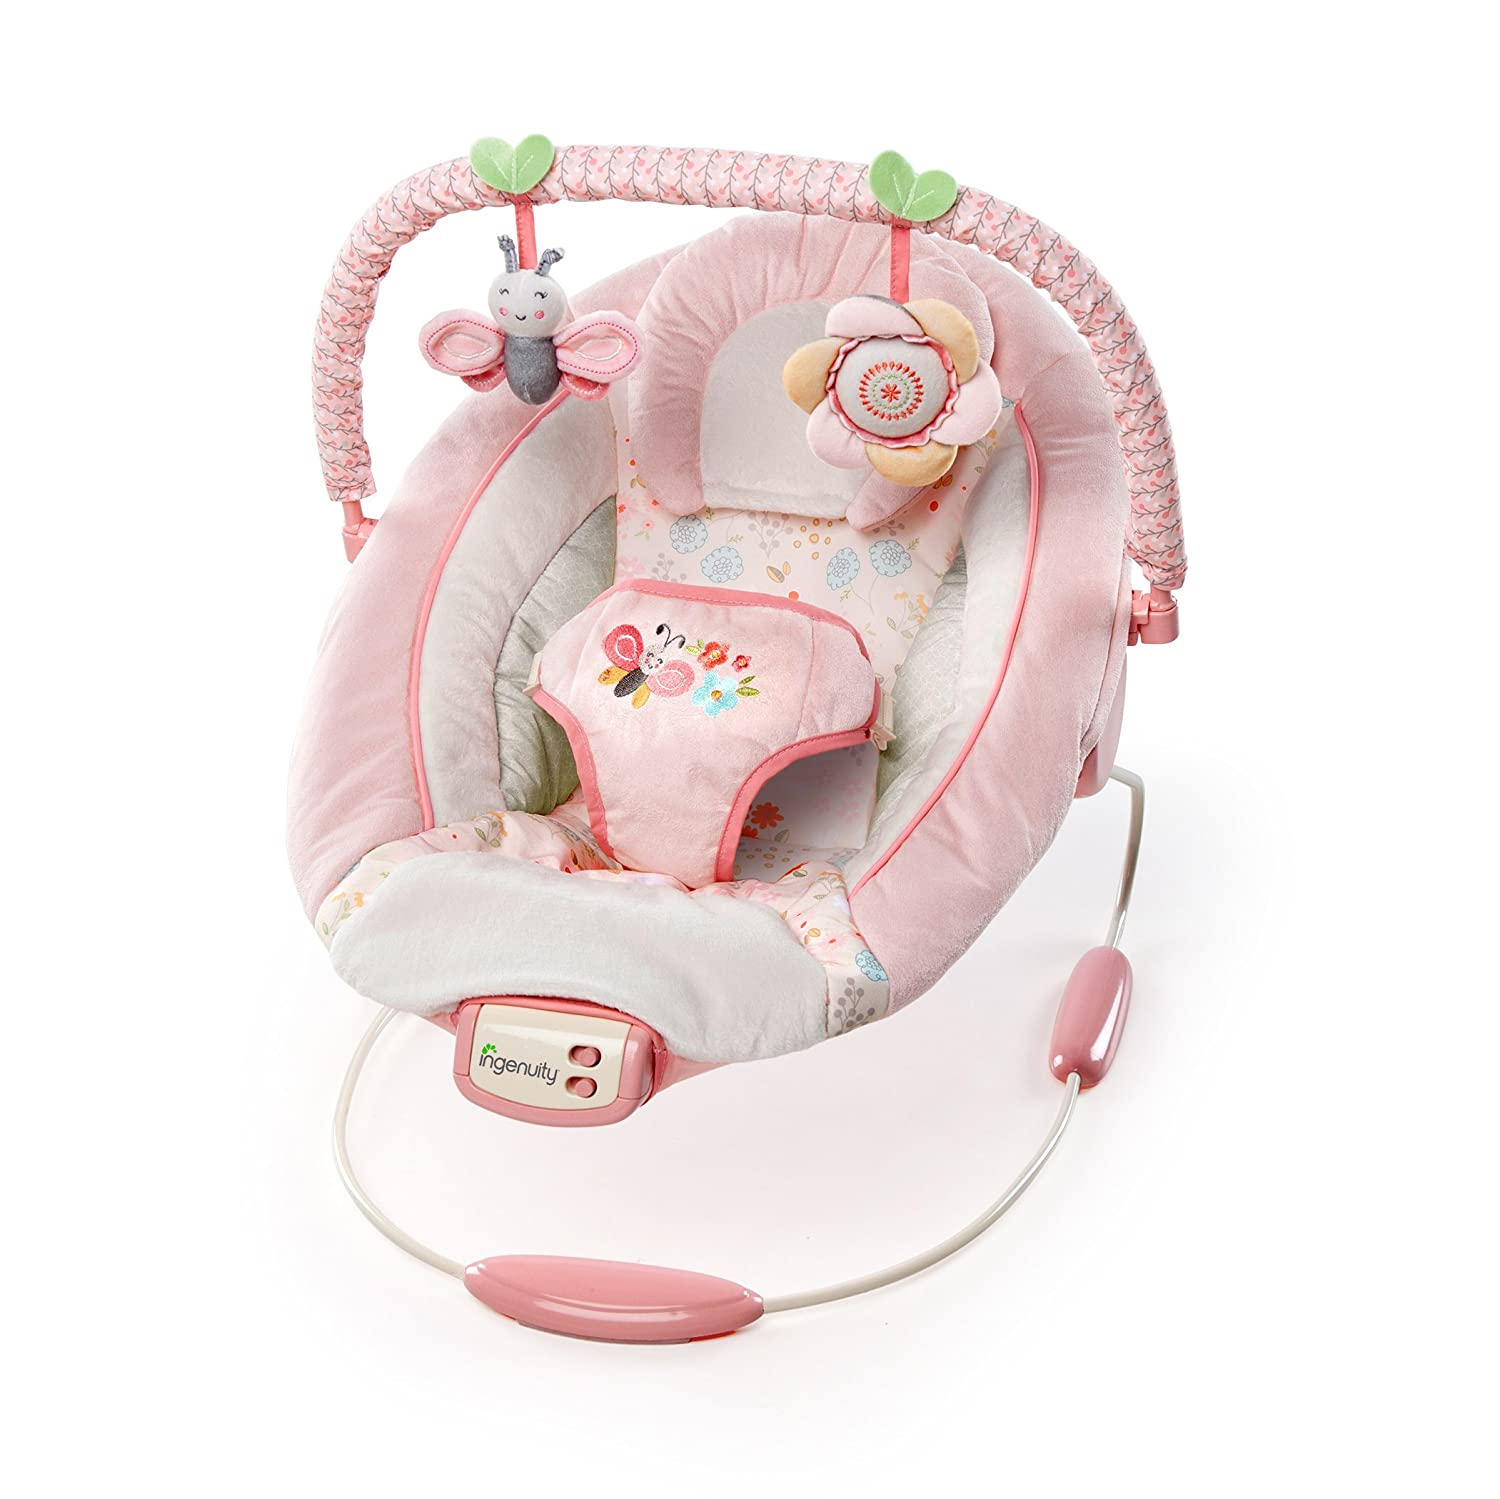 Ingenuity, Babywippe, Felicity Floral 60505-3